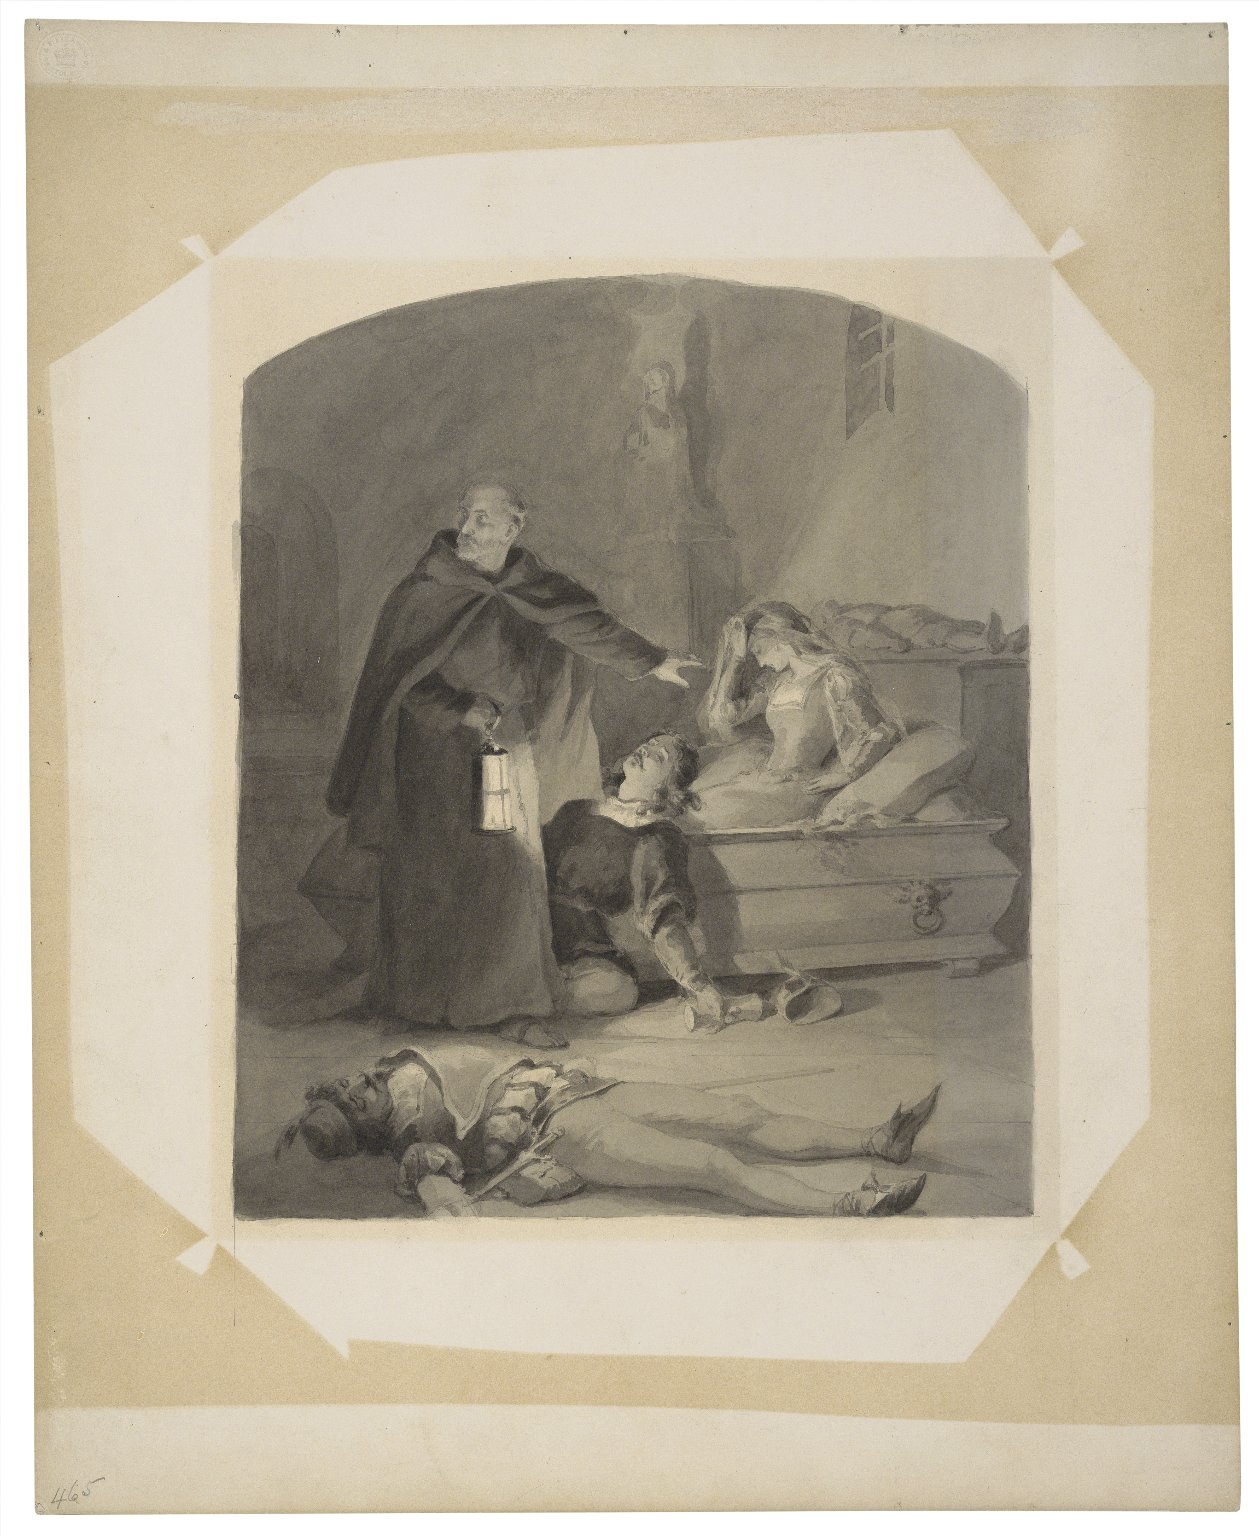 """Unfinished drawing for """"Shakespeare gallery"""", Juliet awaking in the tomb [graphic] / [Felix Darley]."""